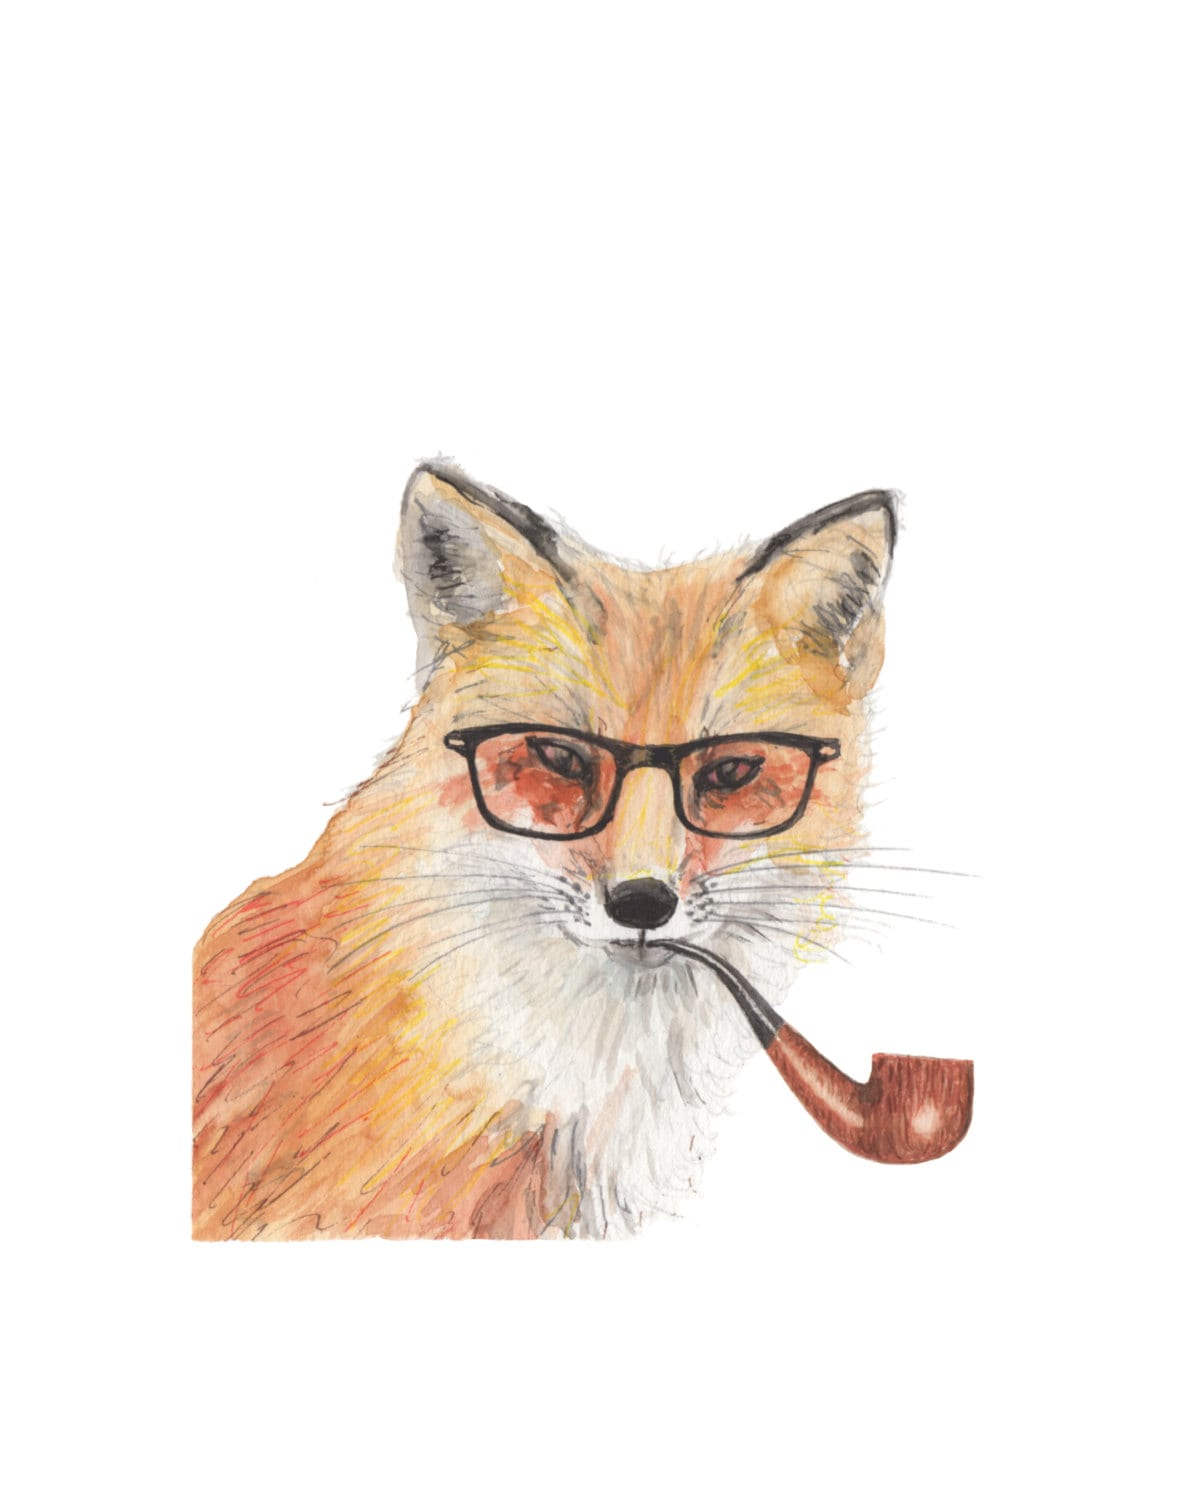 Hipster Animal Tumblr Hipster wall art hipst...